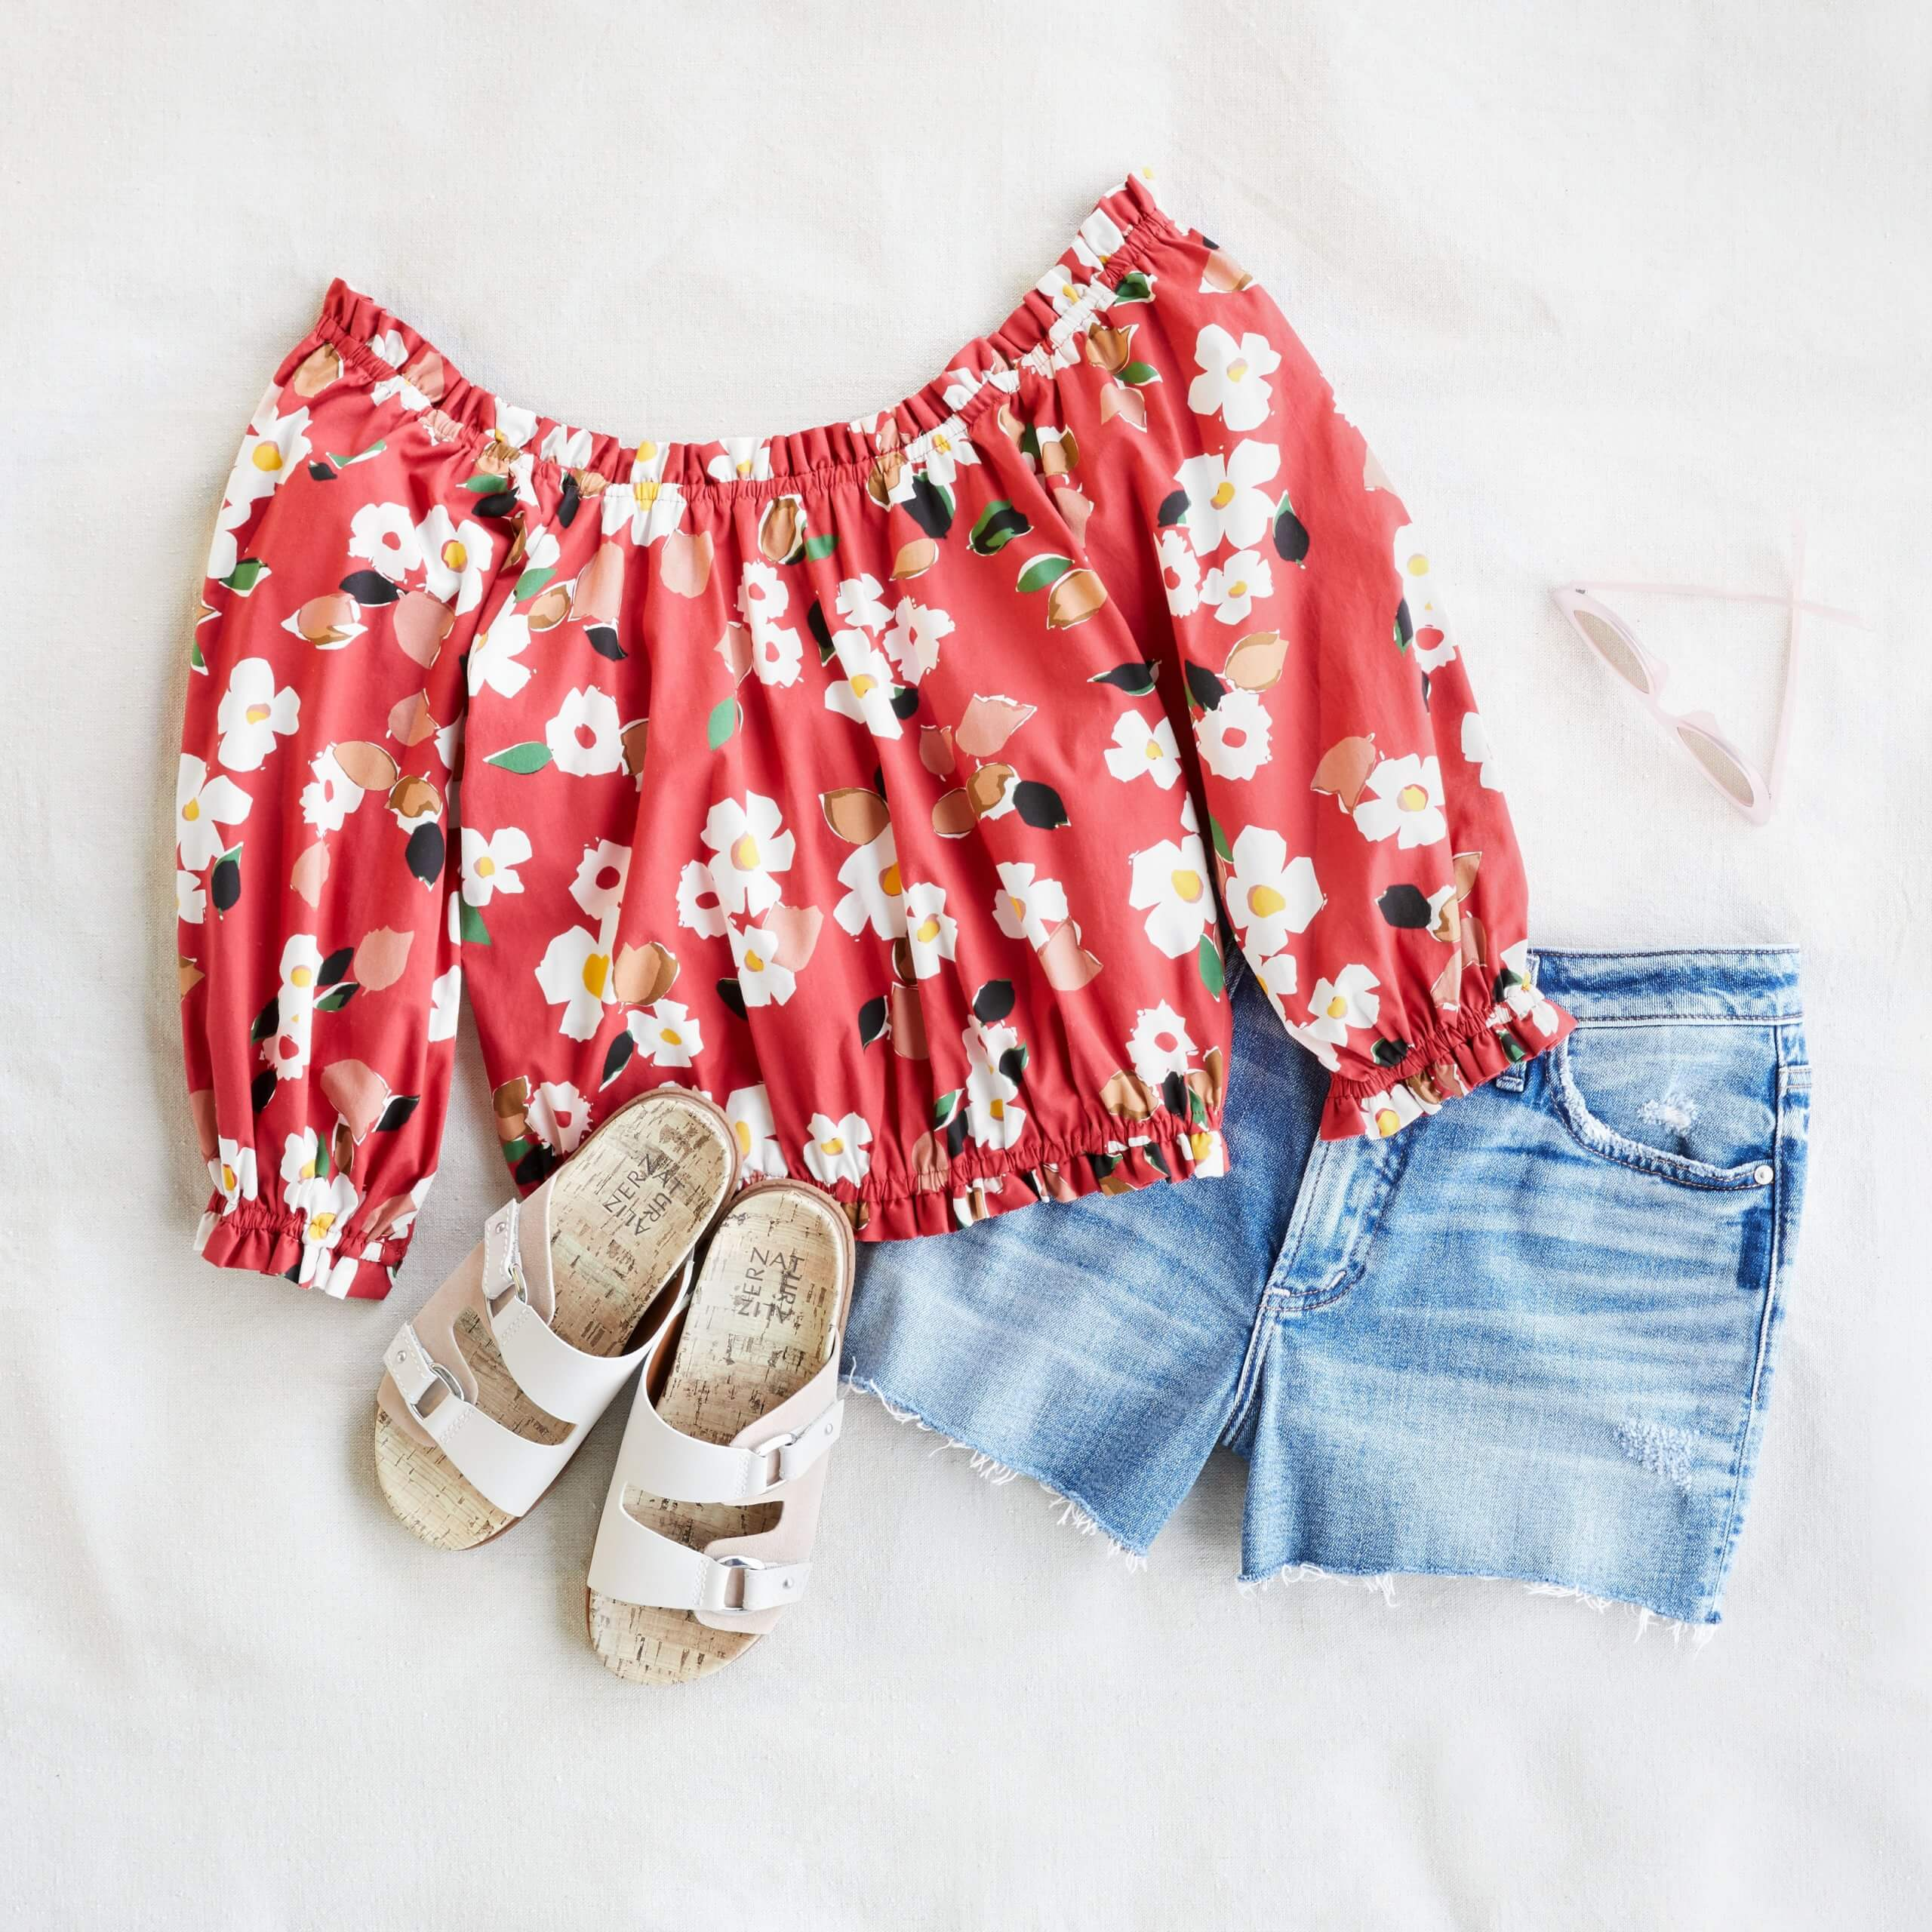 Stitch Fix women's 4th of July outfit laydown featuring blue denim shorts, white sandals, and red and white floral print blouse.